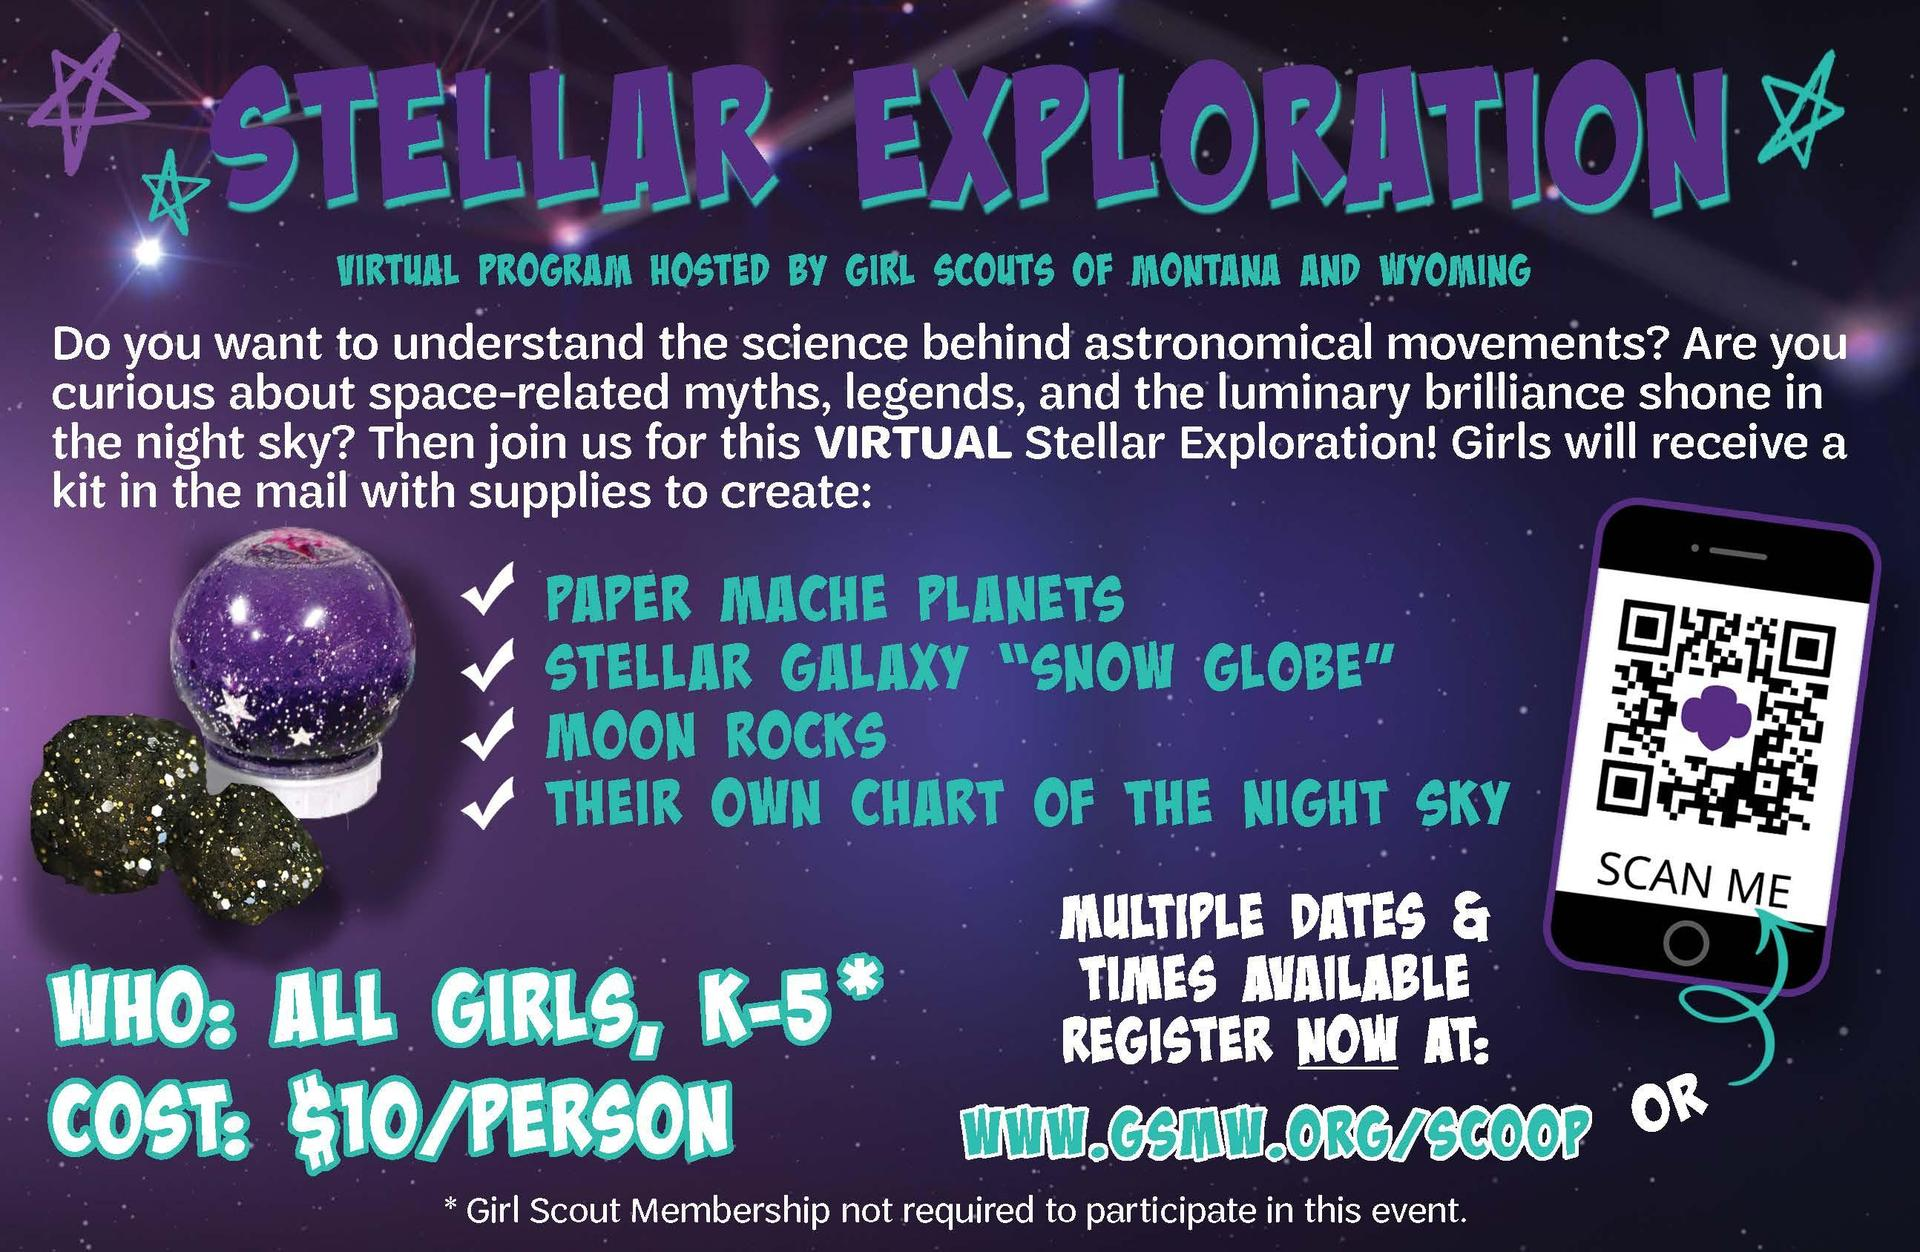 Girl Scouts Stellar Exploration Virtual Program Flyer